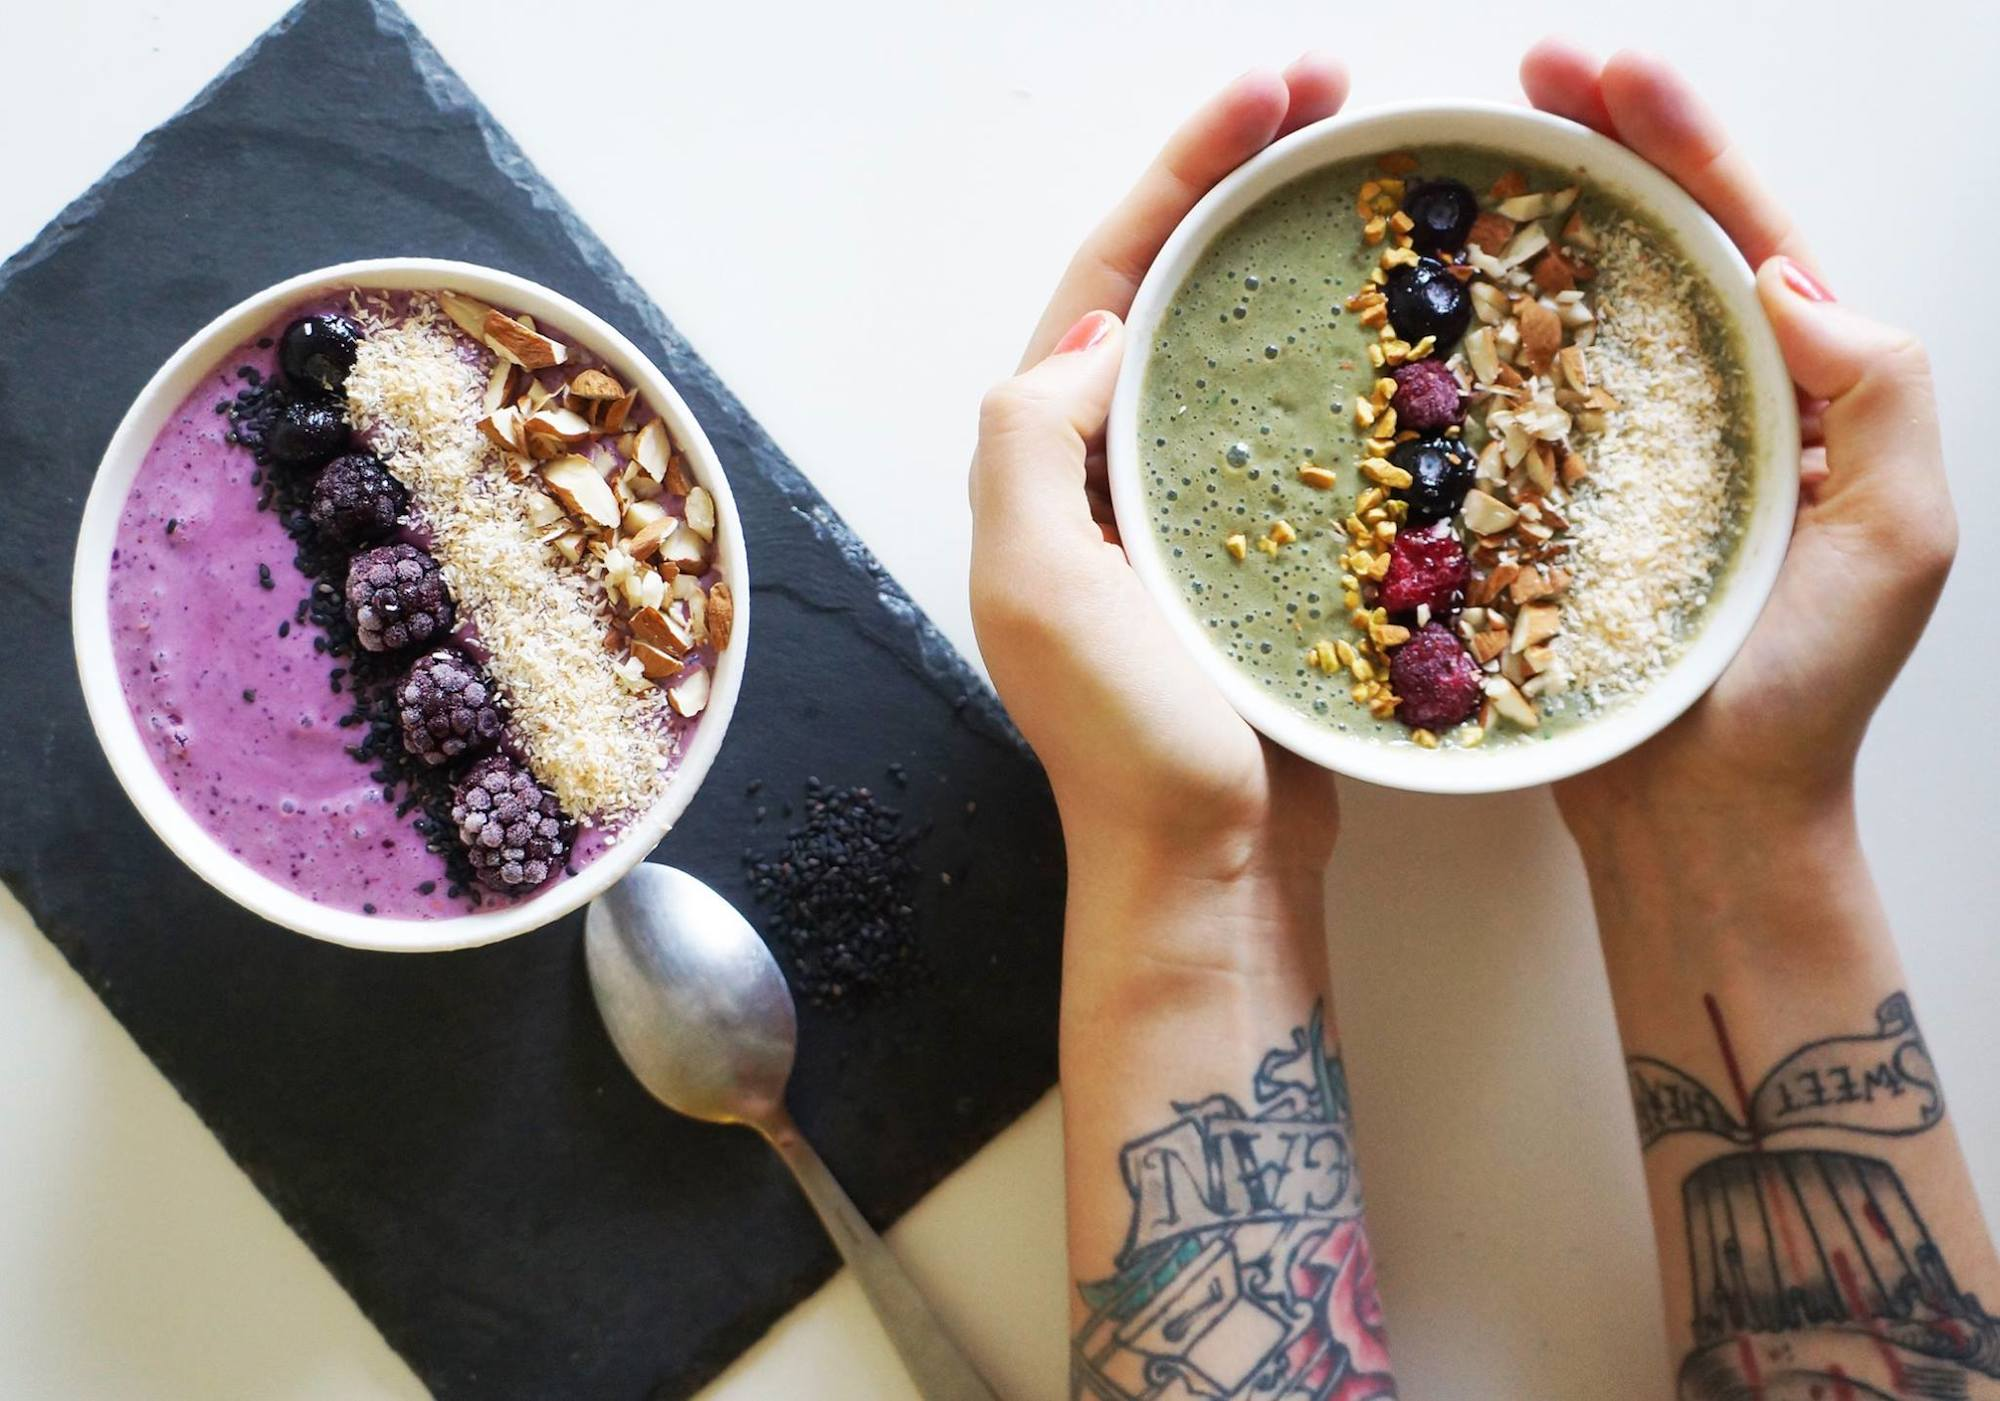 The top vegan and veggie places to eat in Paris, like Cloud Cakes for its delicious acai bowls like these colorful berry ones.